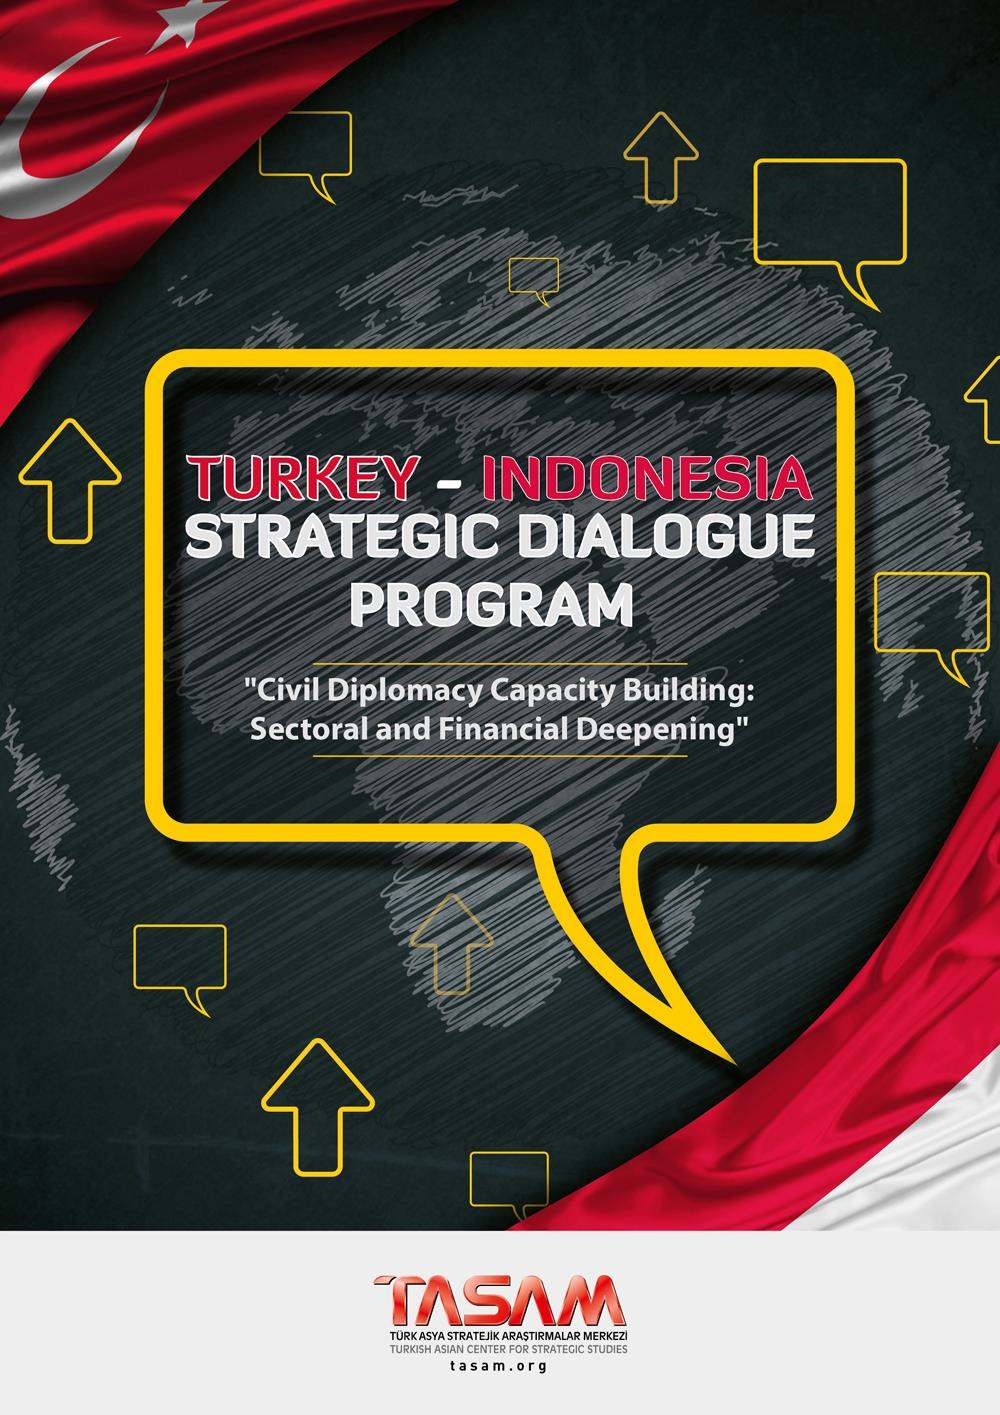 Turkey - Indonesia Strategic Dialogue Program